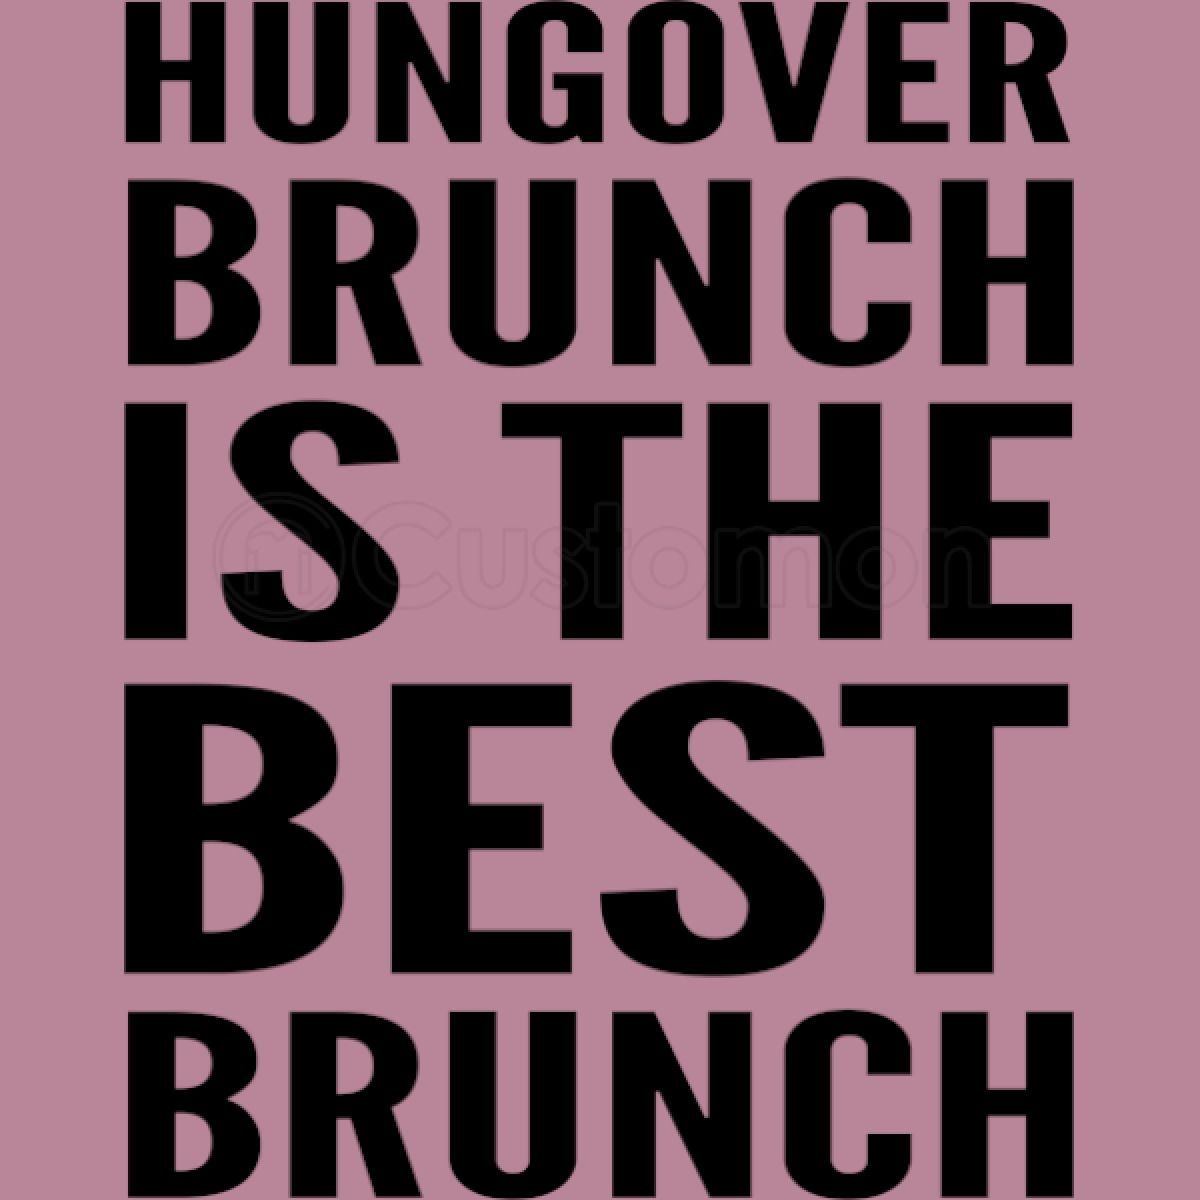 Denver S Best Hangover Brunches: Hangover Brunch Is The Best Brunch Women's T-shirt